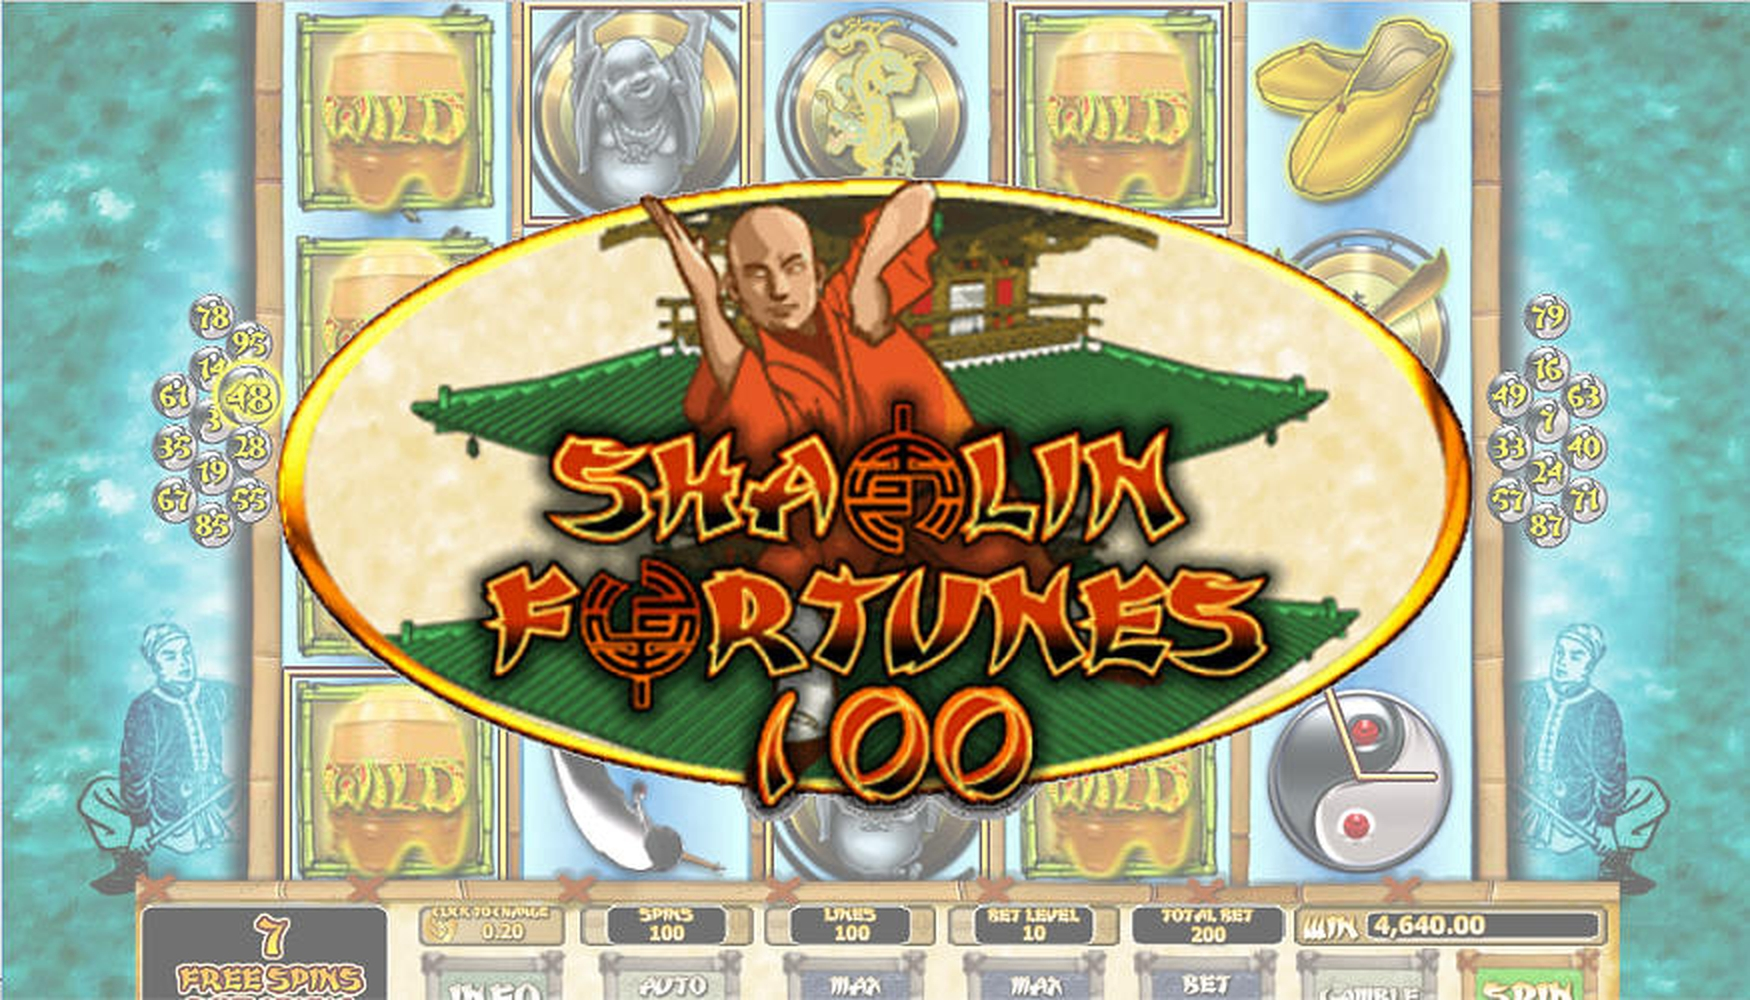 The Shaolin Fortunes 100 Online Slot Demo Game by Habanero